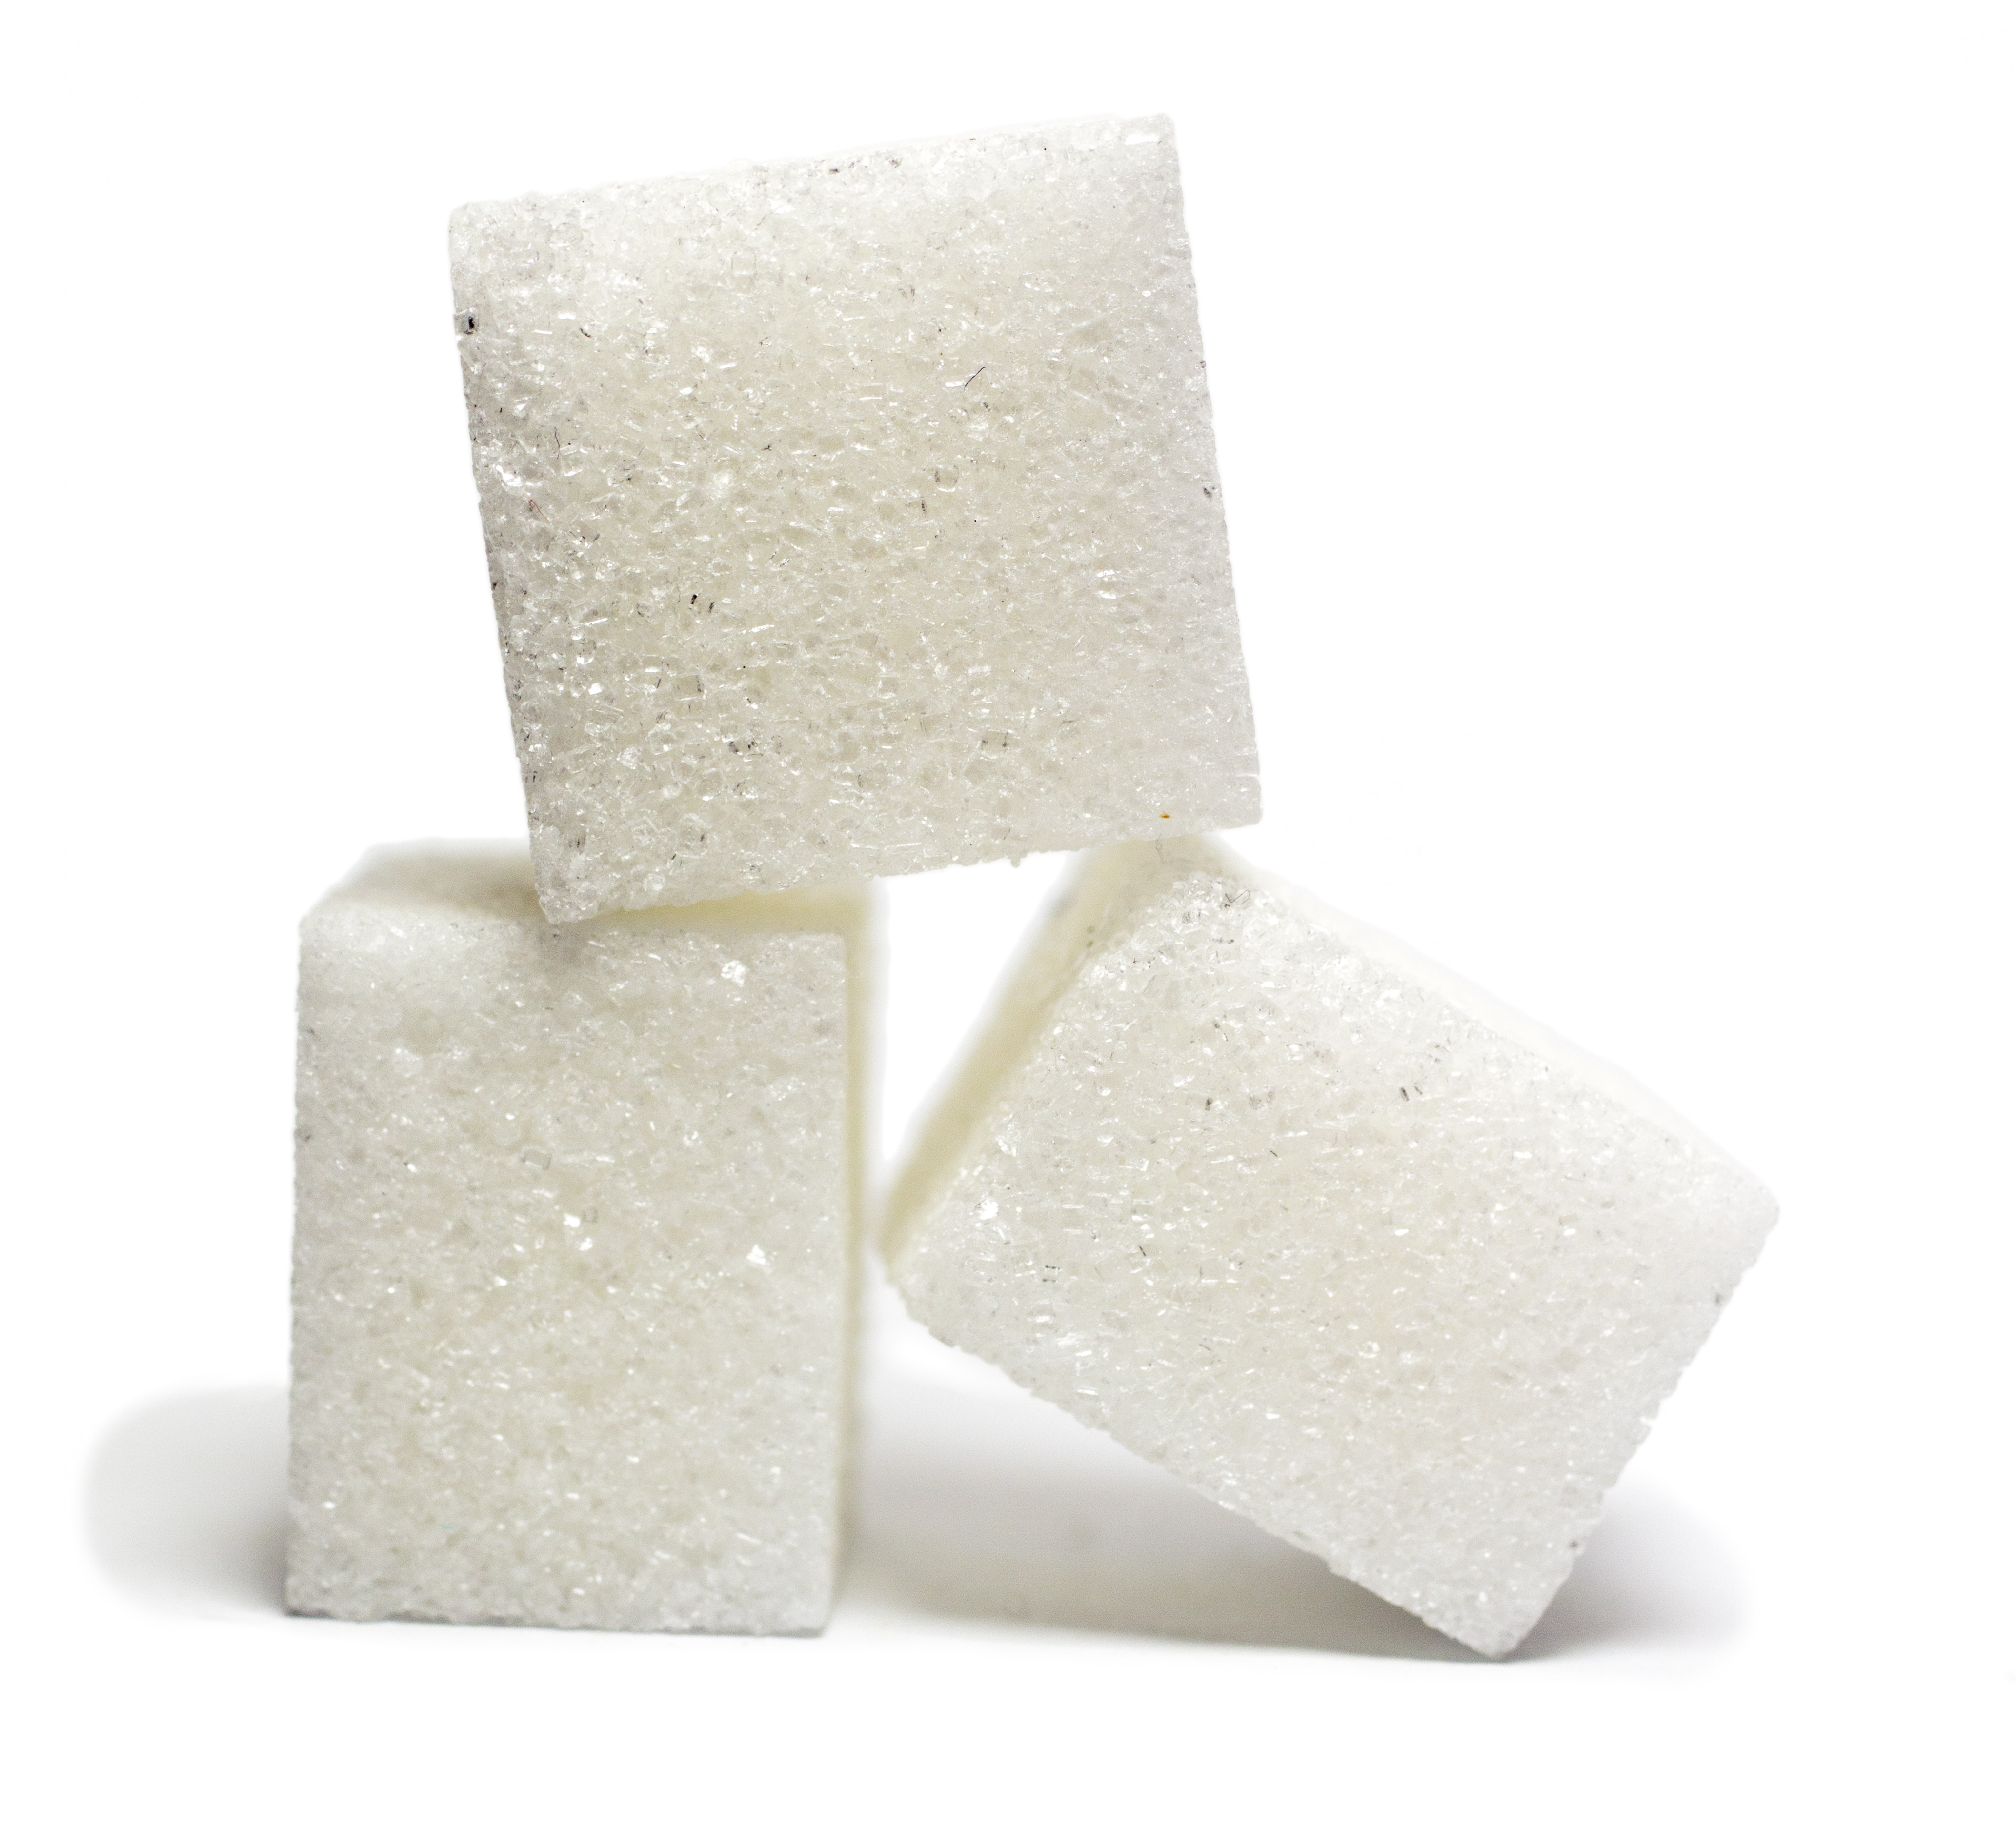 Refined sugar significantly r